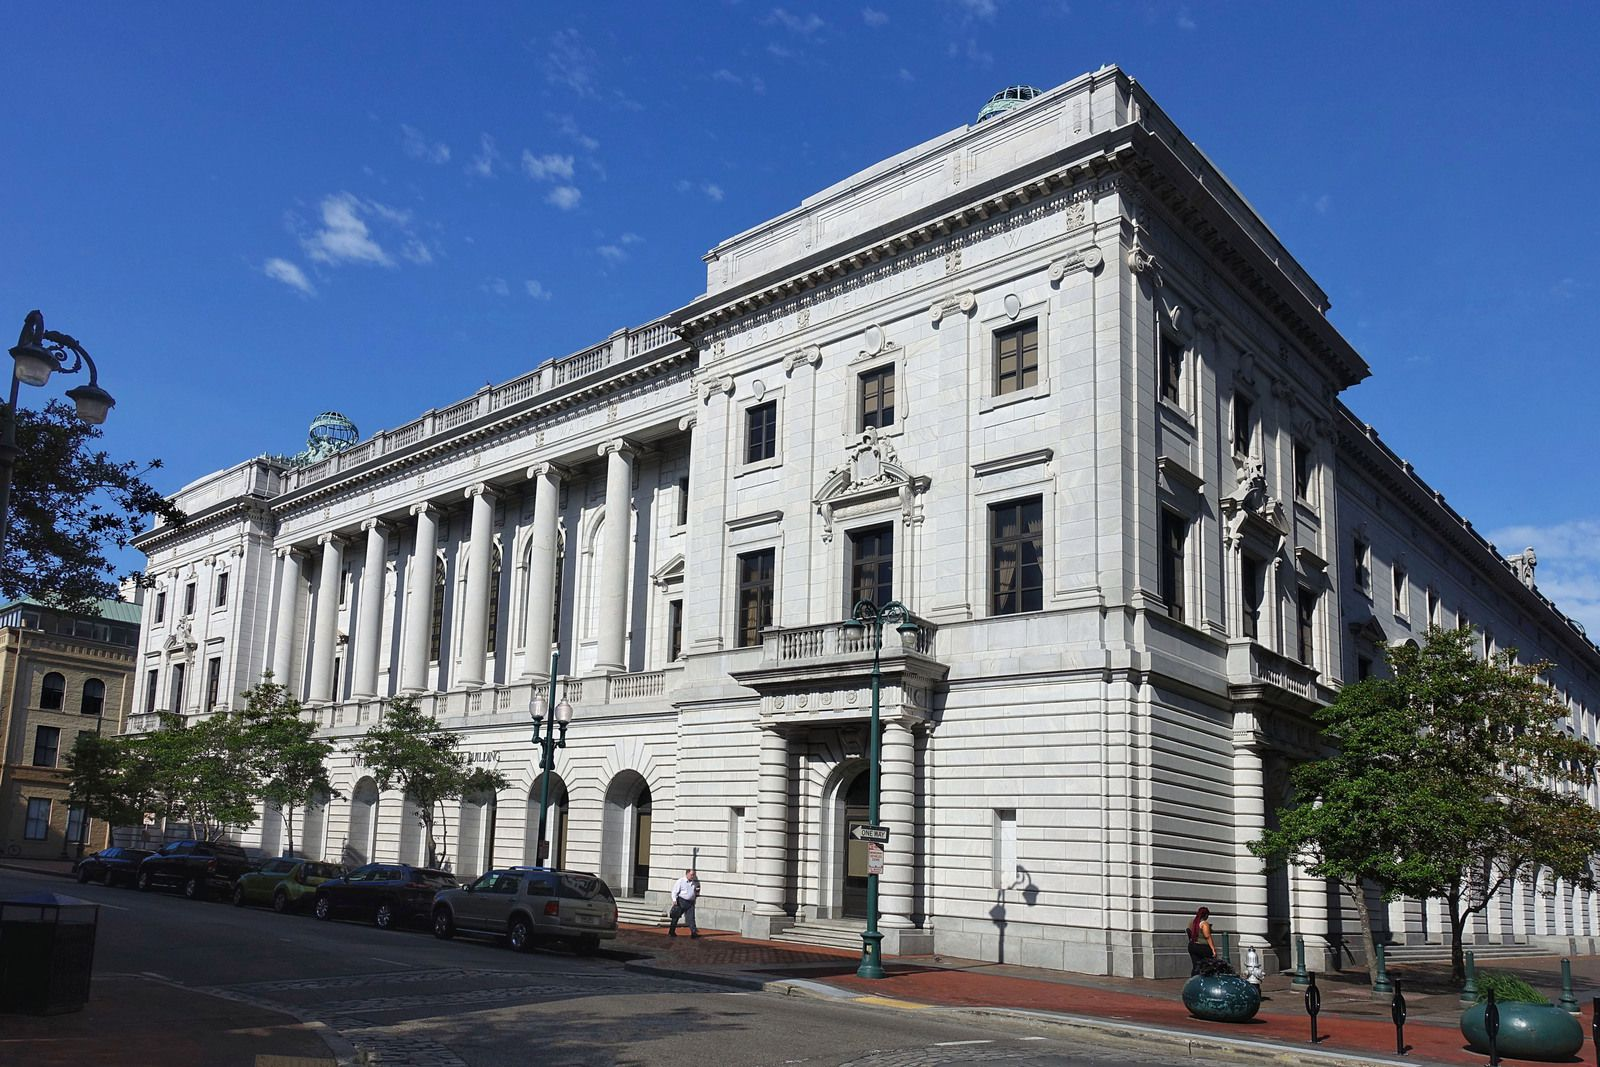 NOLA Court of Justice